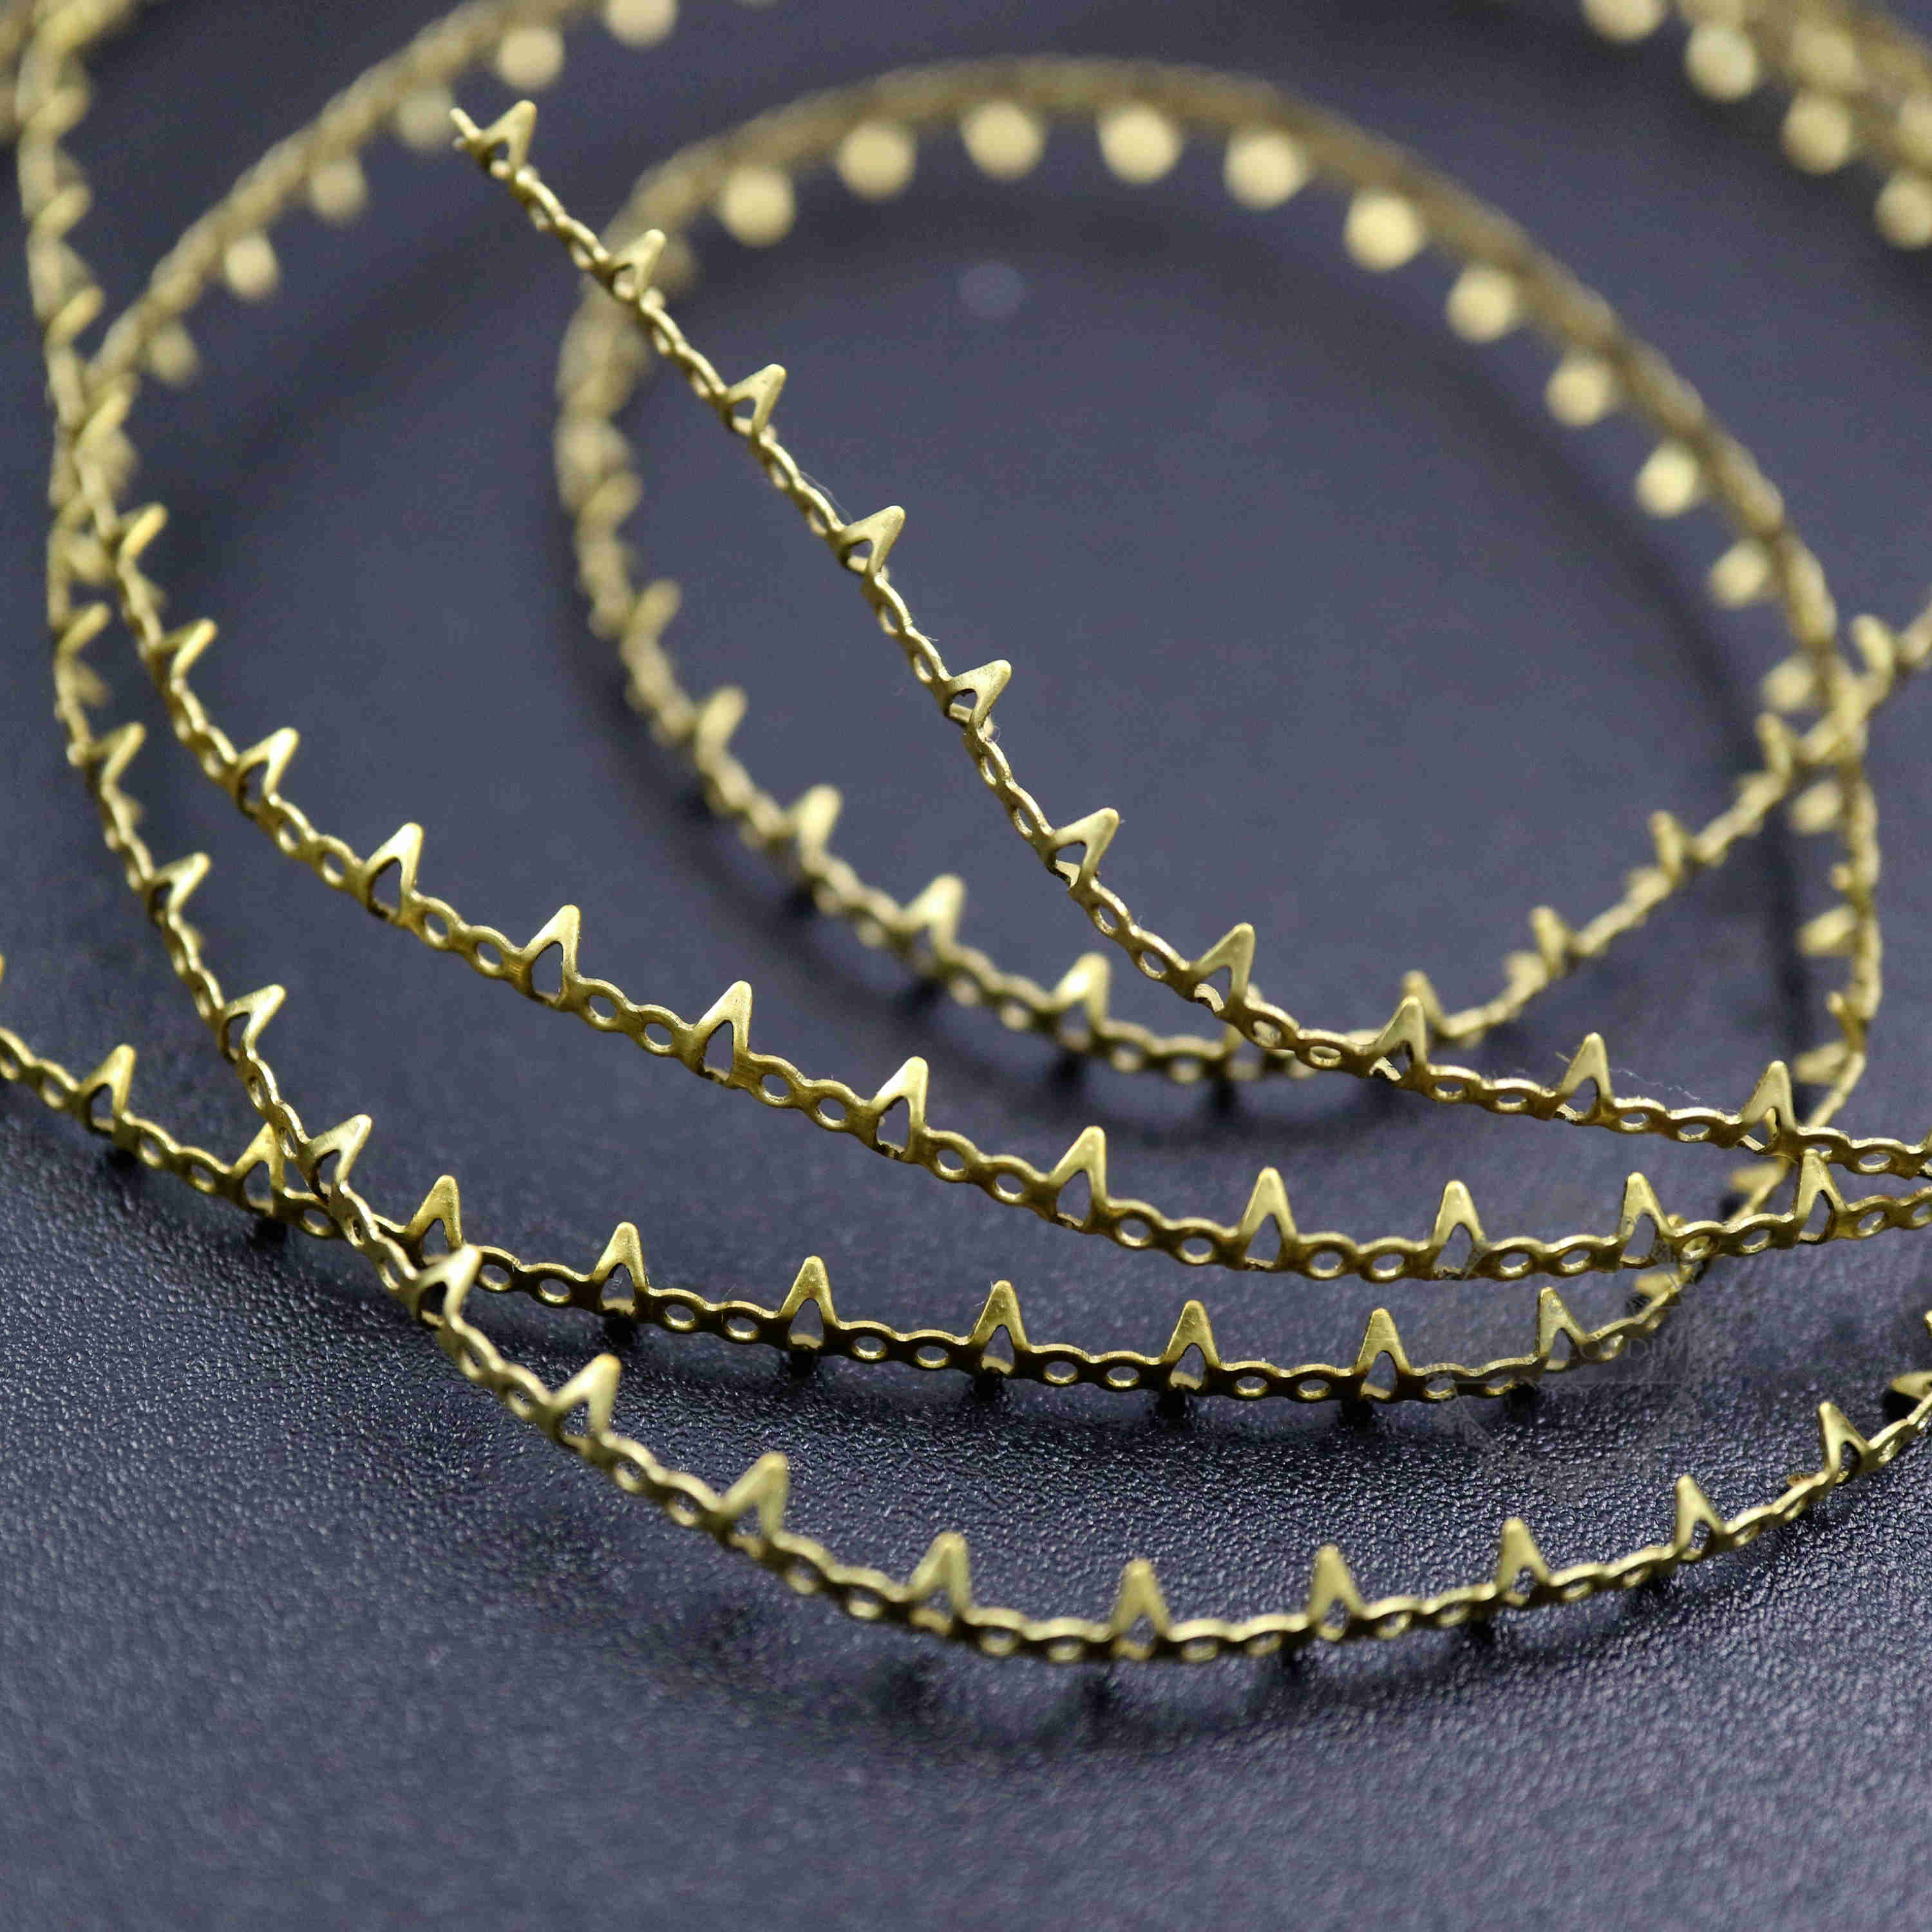 Vintage Style Raw Brass Crown Cabochon Stone Wrapping Wire Special DIY Findings 1505019